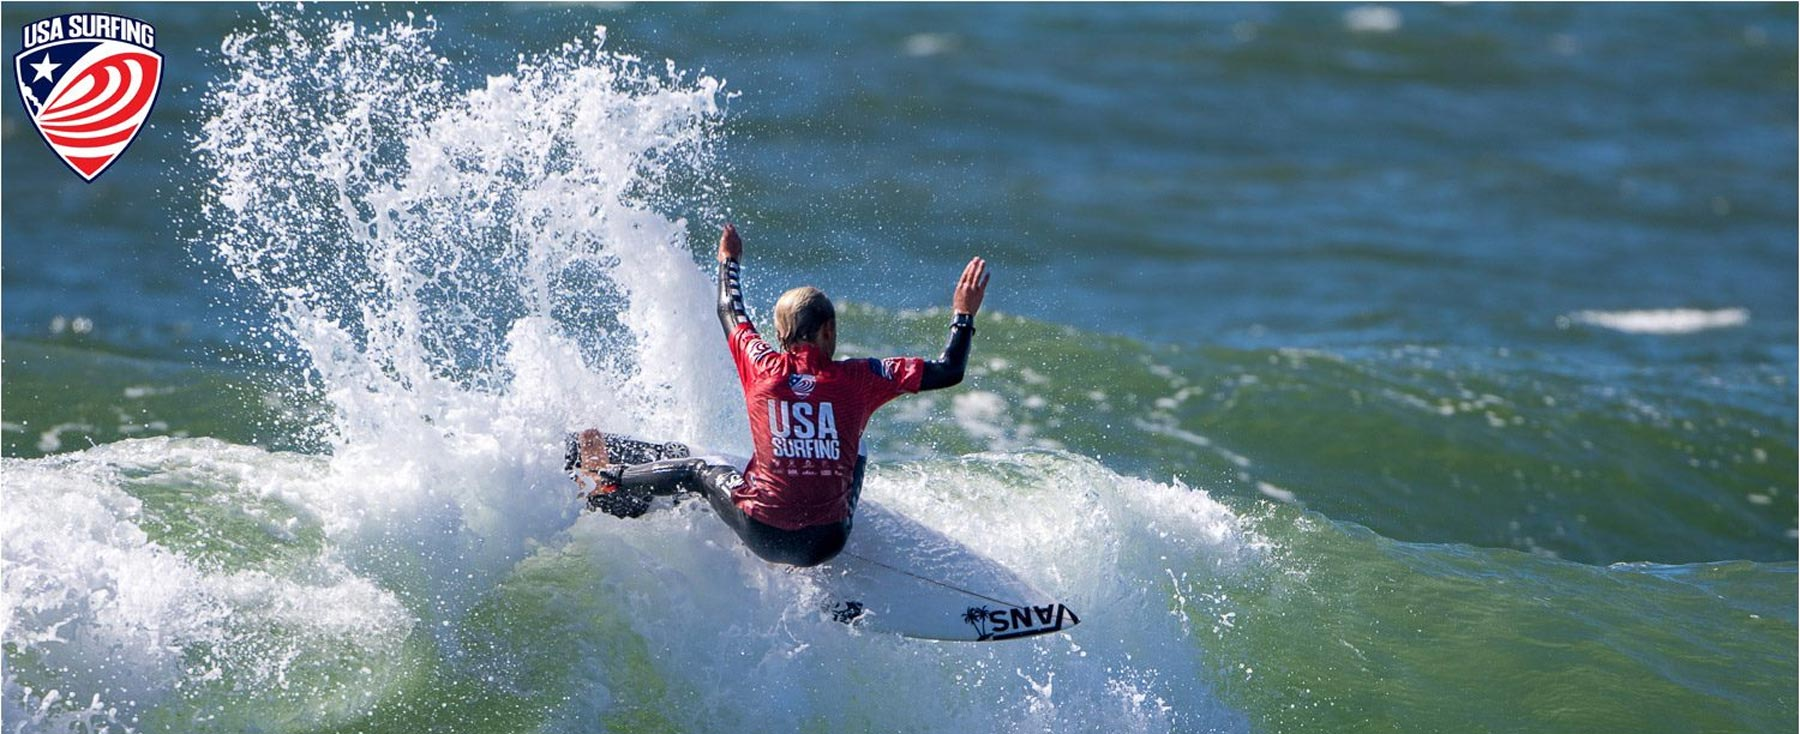 Surfing America 2017 USA Surfing Championships